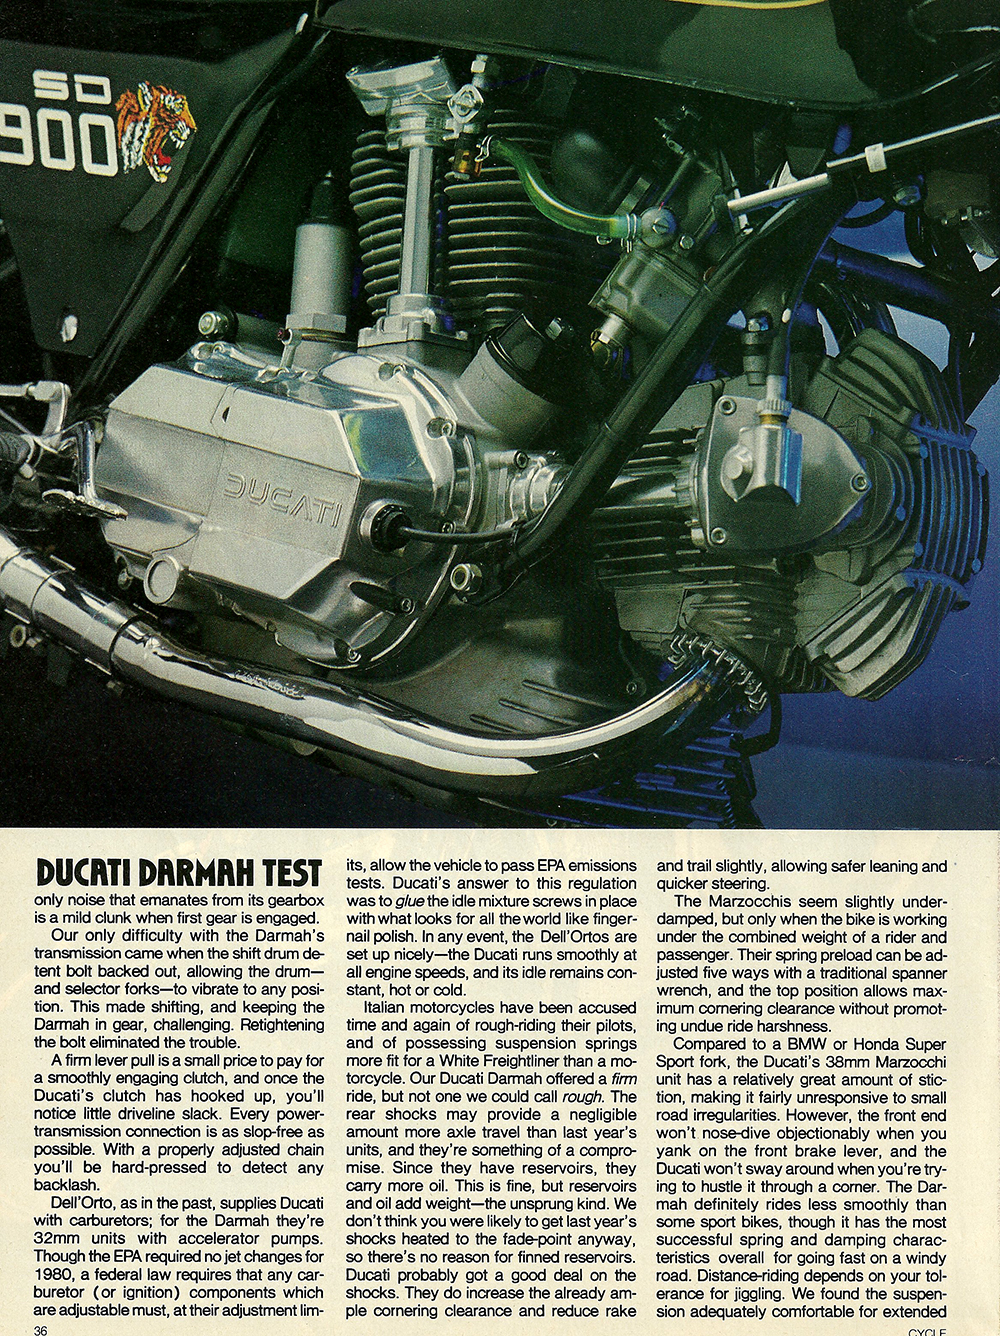 1980 Ducati Darmah 900 SD road test 05.jpg